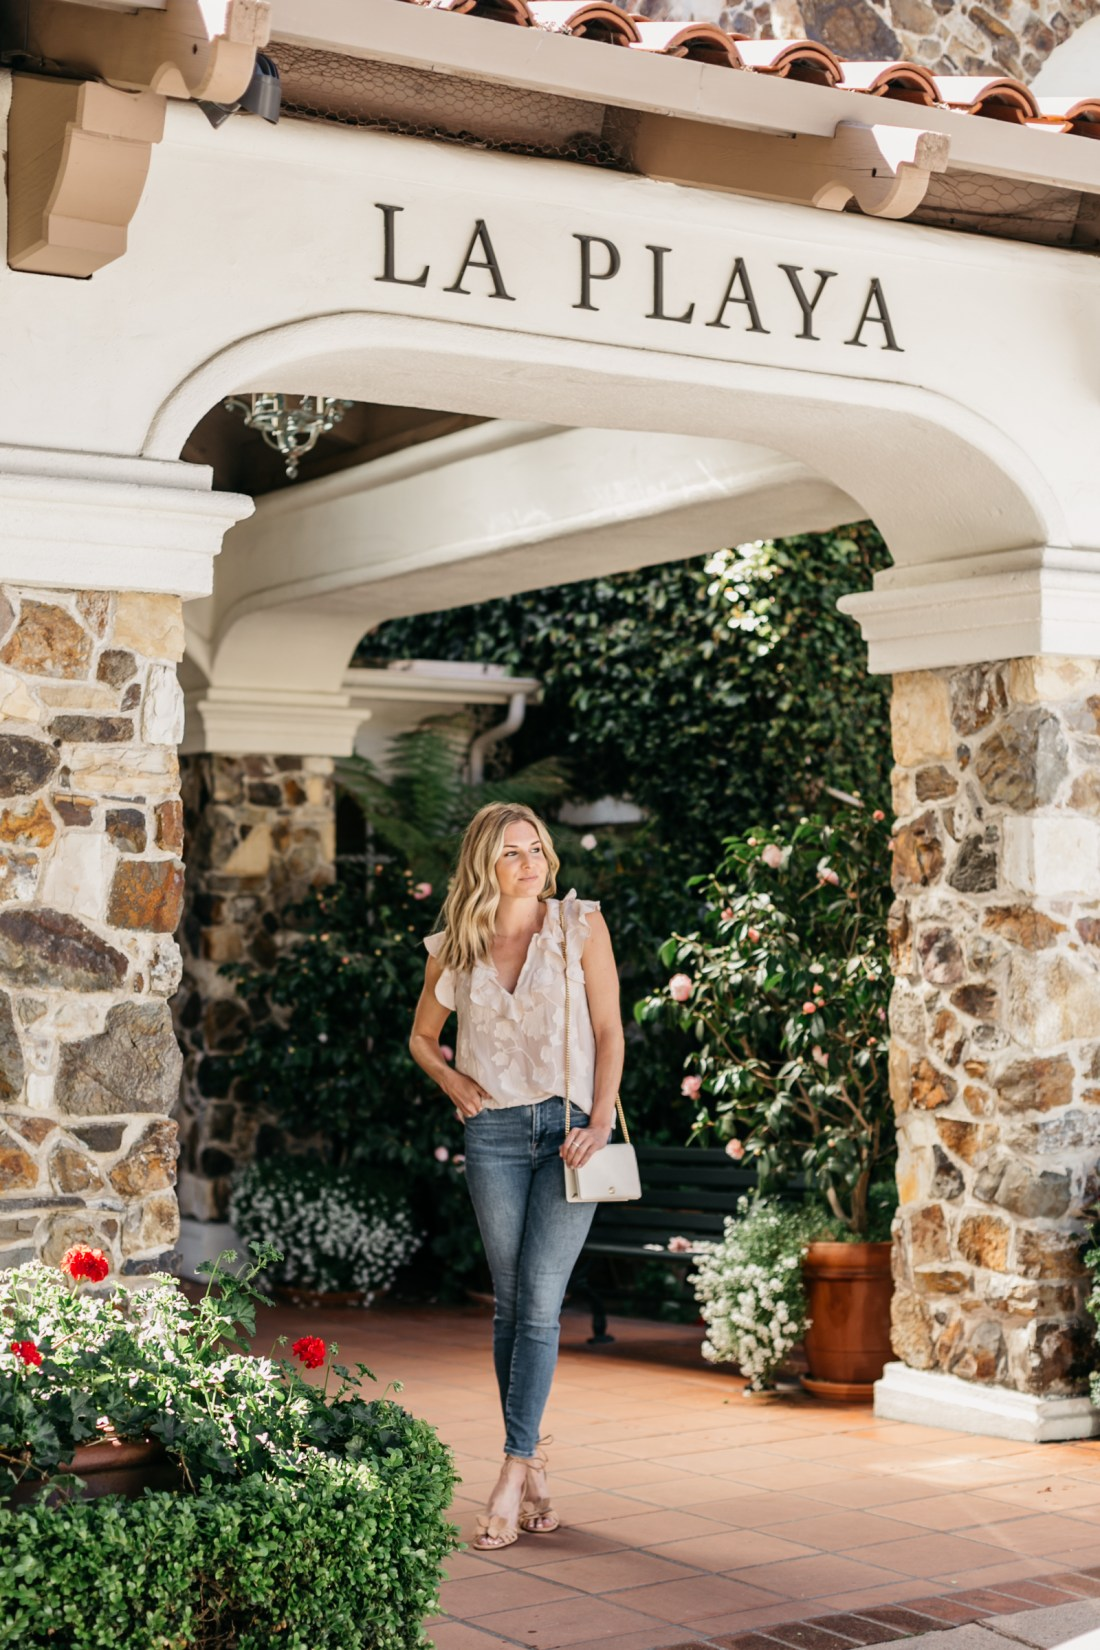 Carmel By The Sea - WHERE TO STAY | One Small Blonde